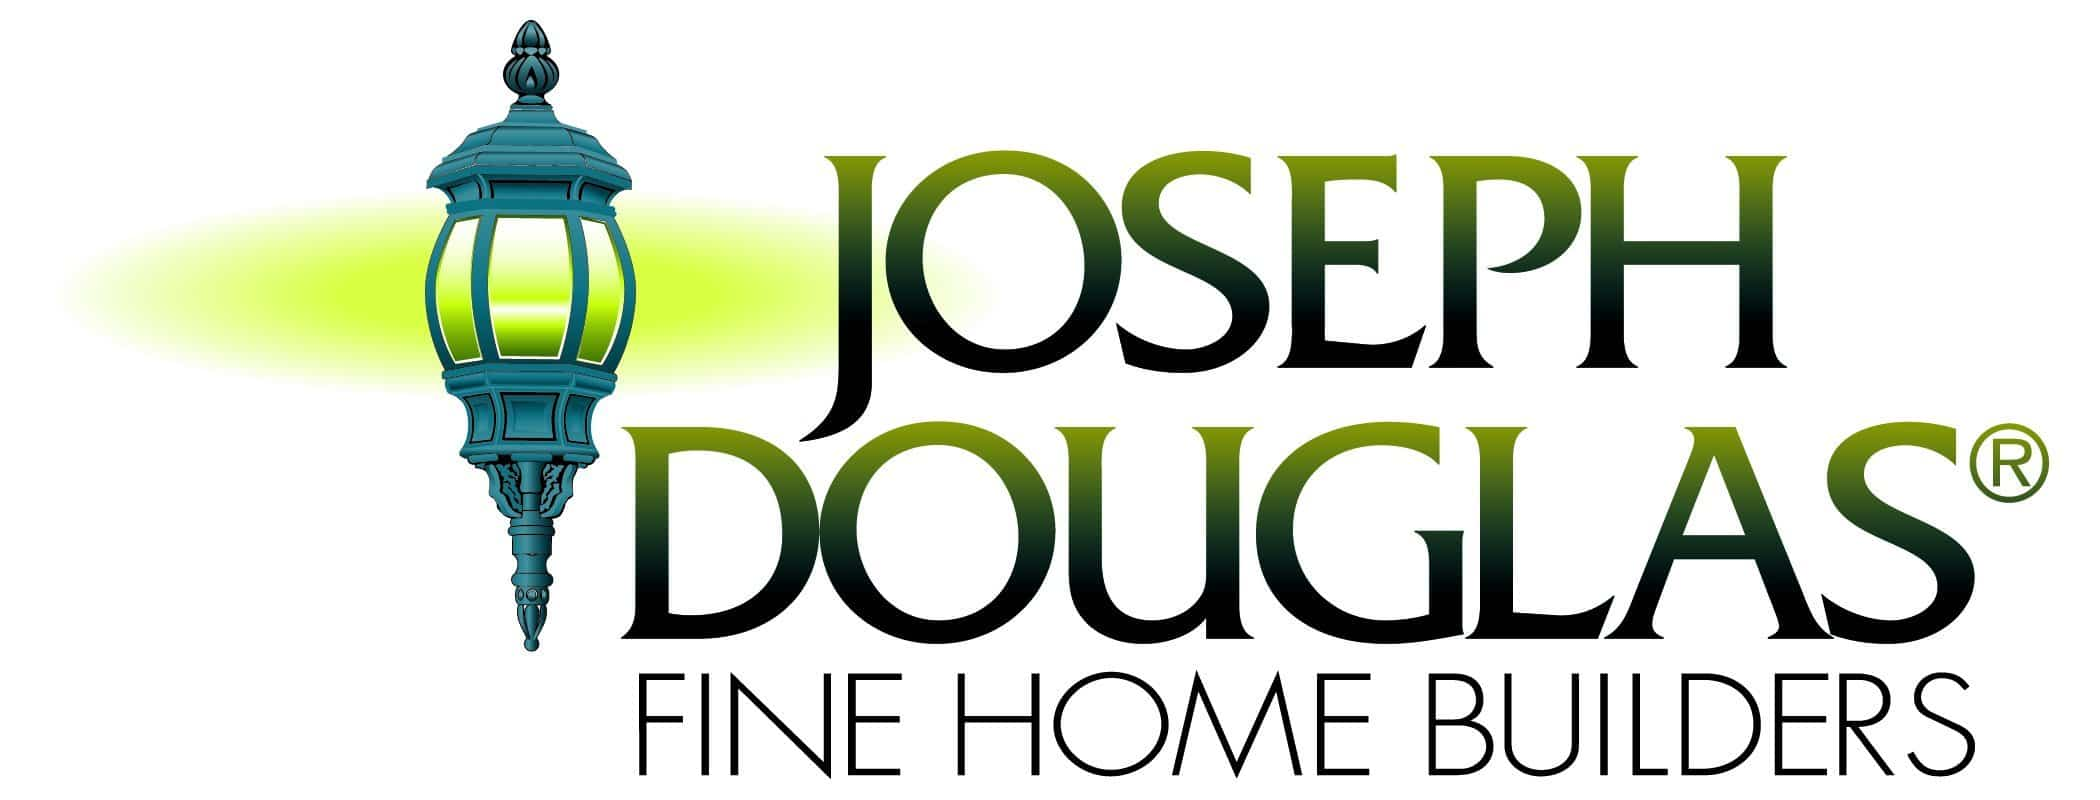 Waukesha County Home Builders Joseph